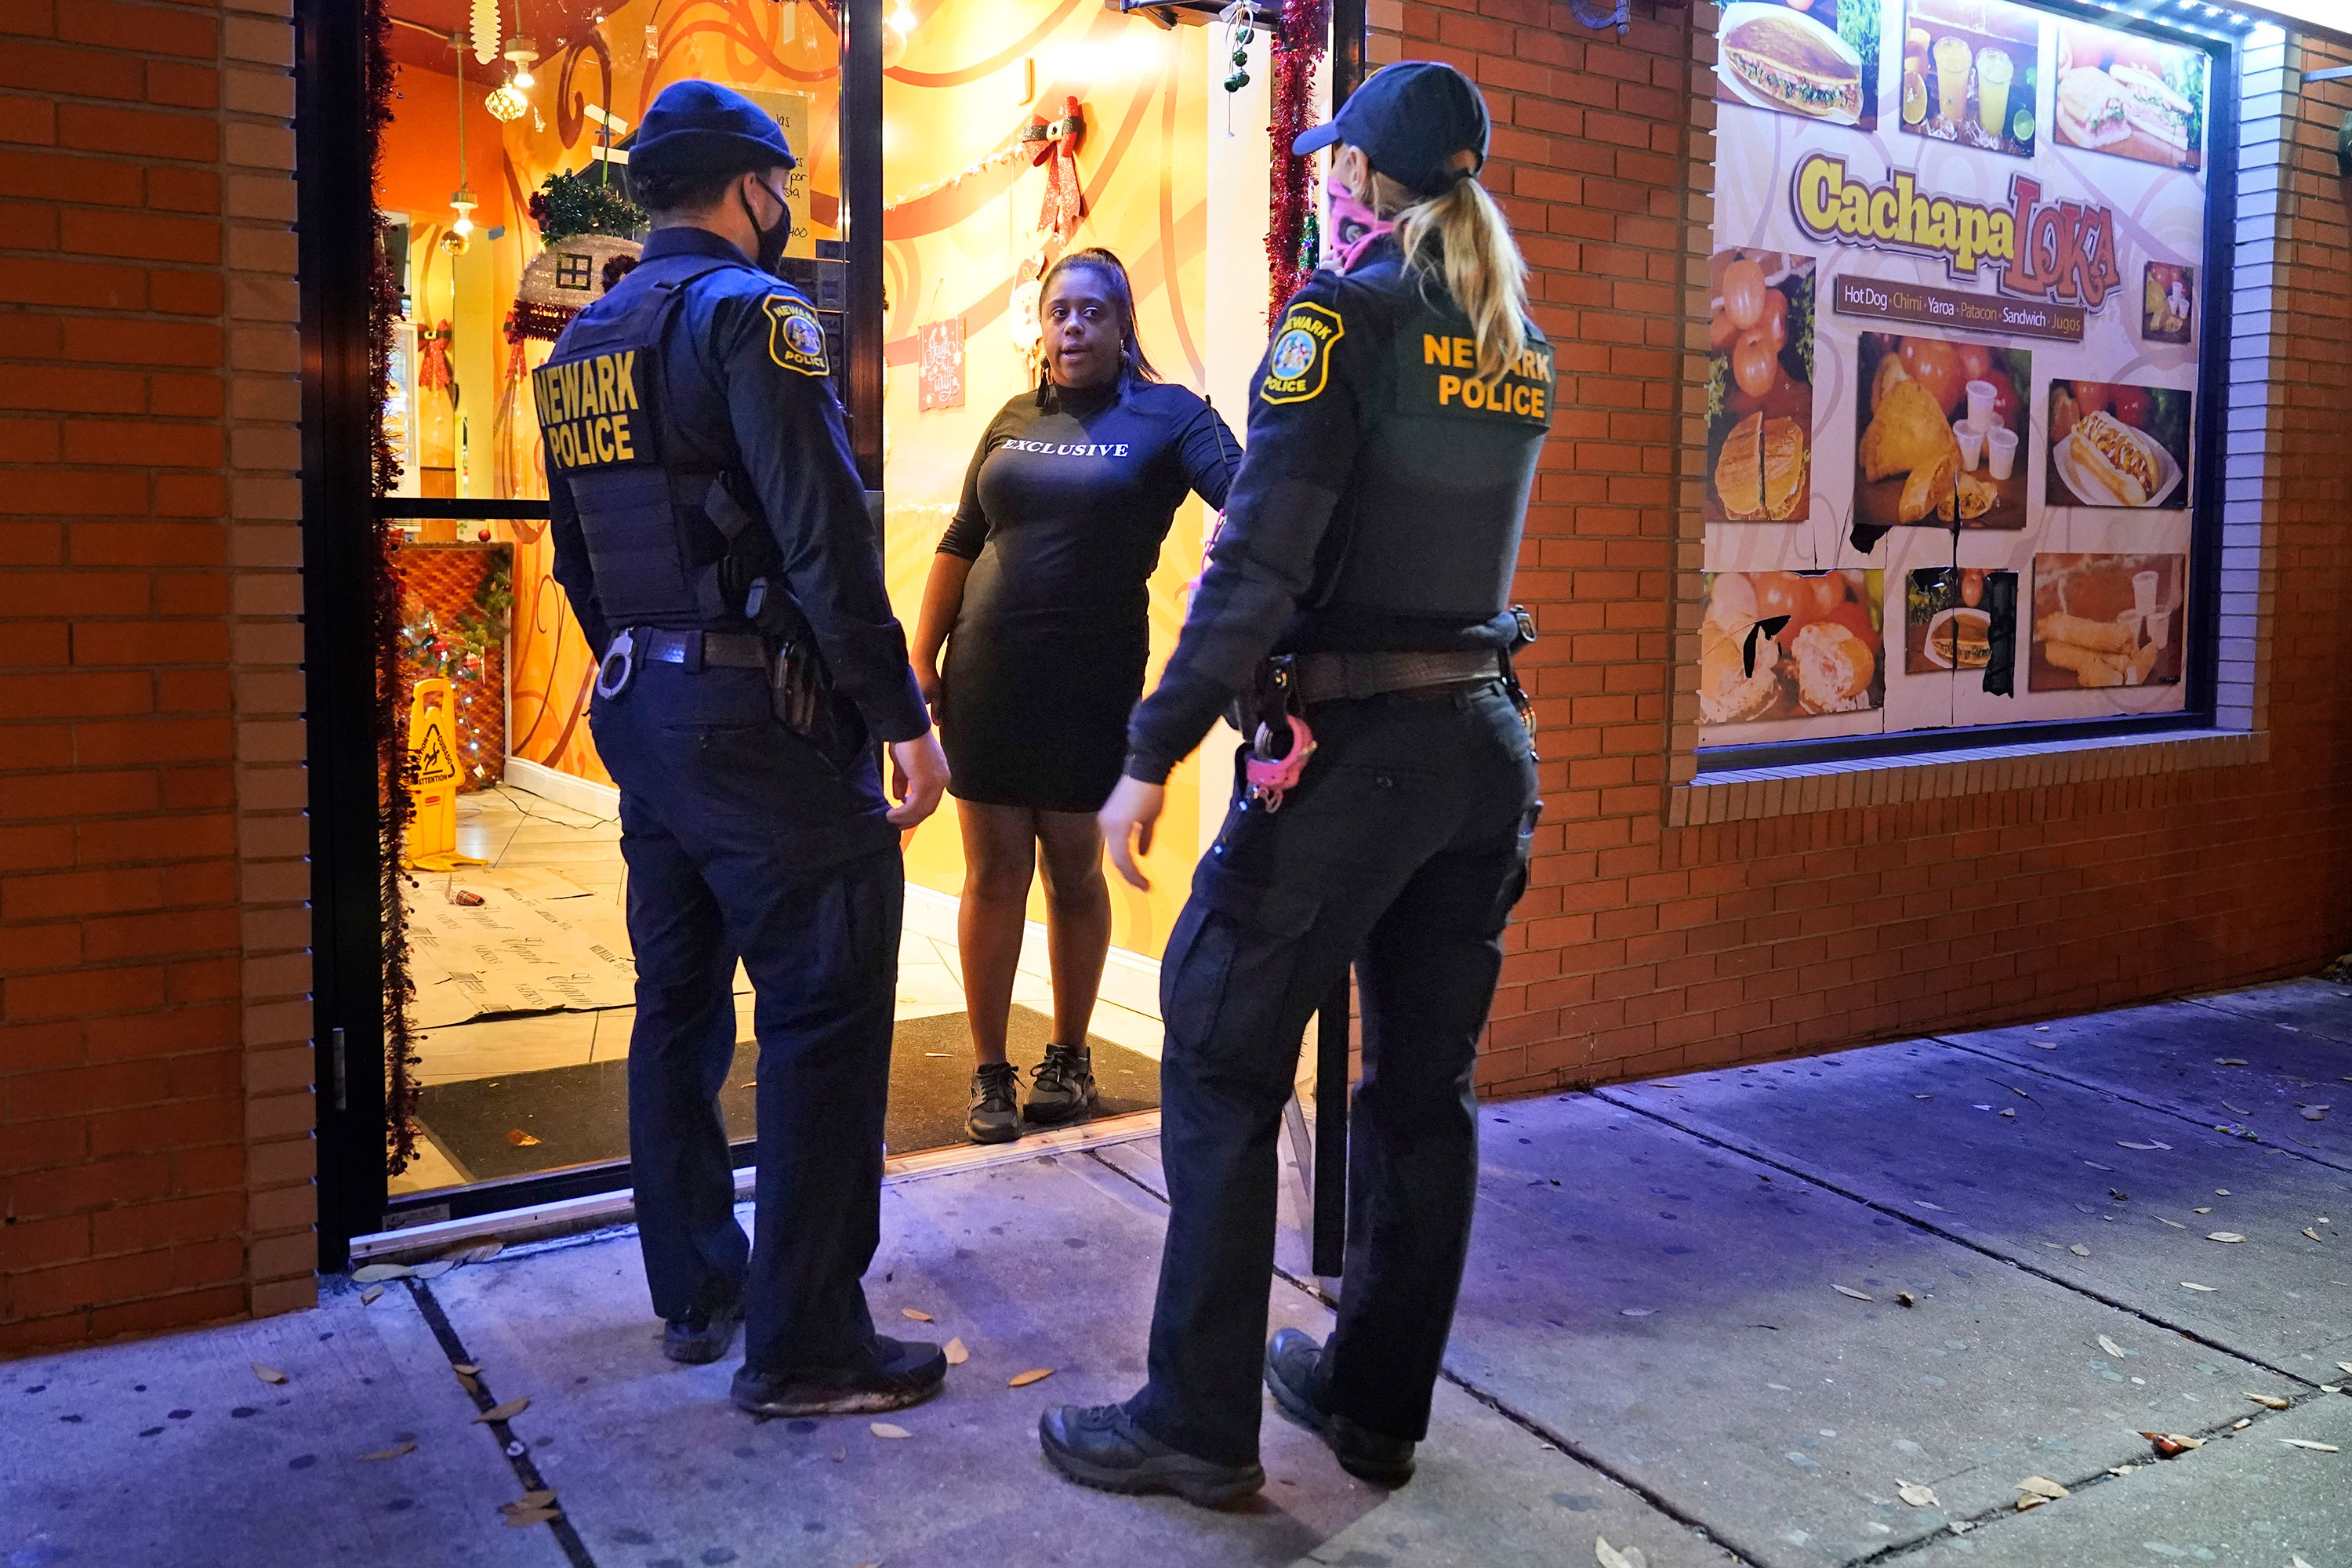 Police officers remind a woman on November 12 in the doorway of a Newark, New Jersey, restaurant of the new curfew and dining regulations in an area where coronavirus cases have recently spiked.